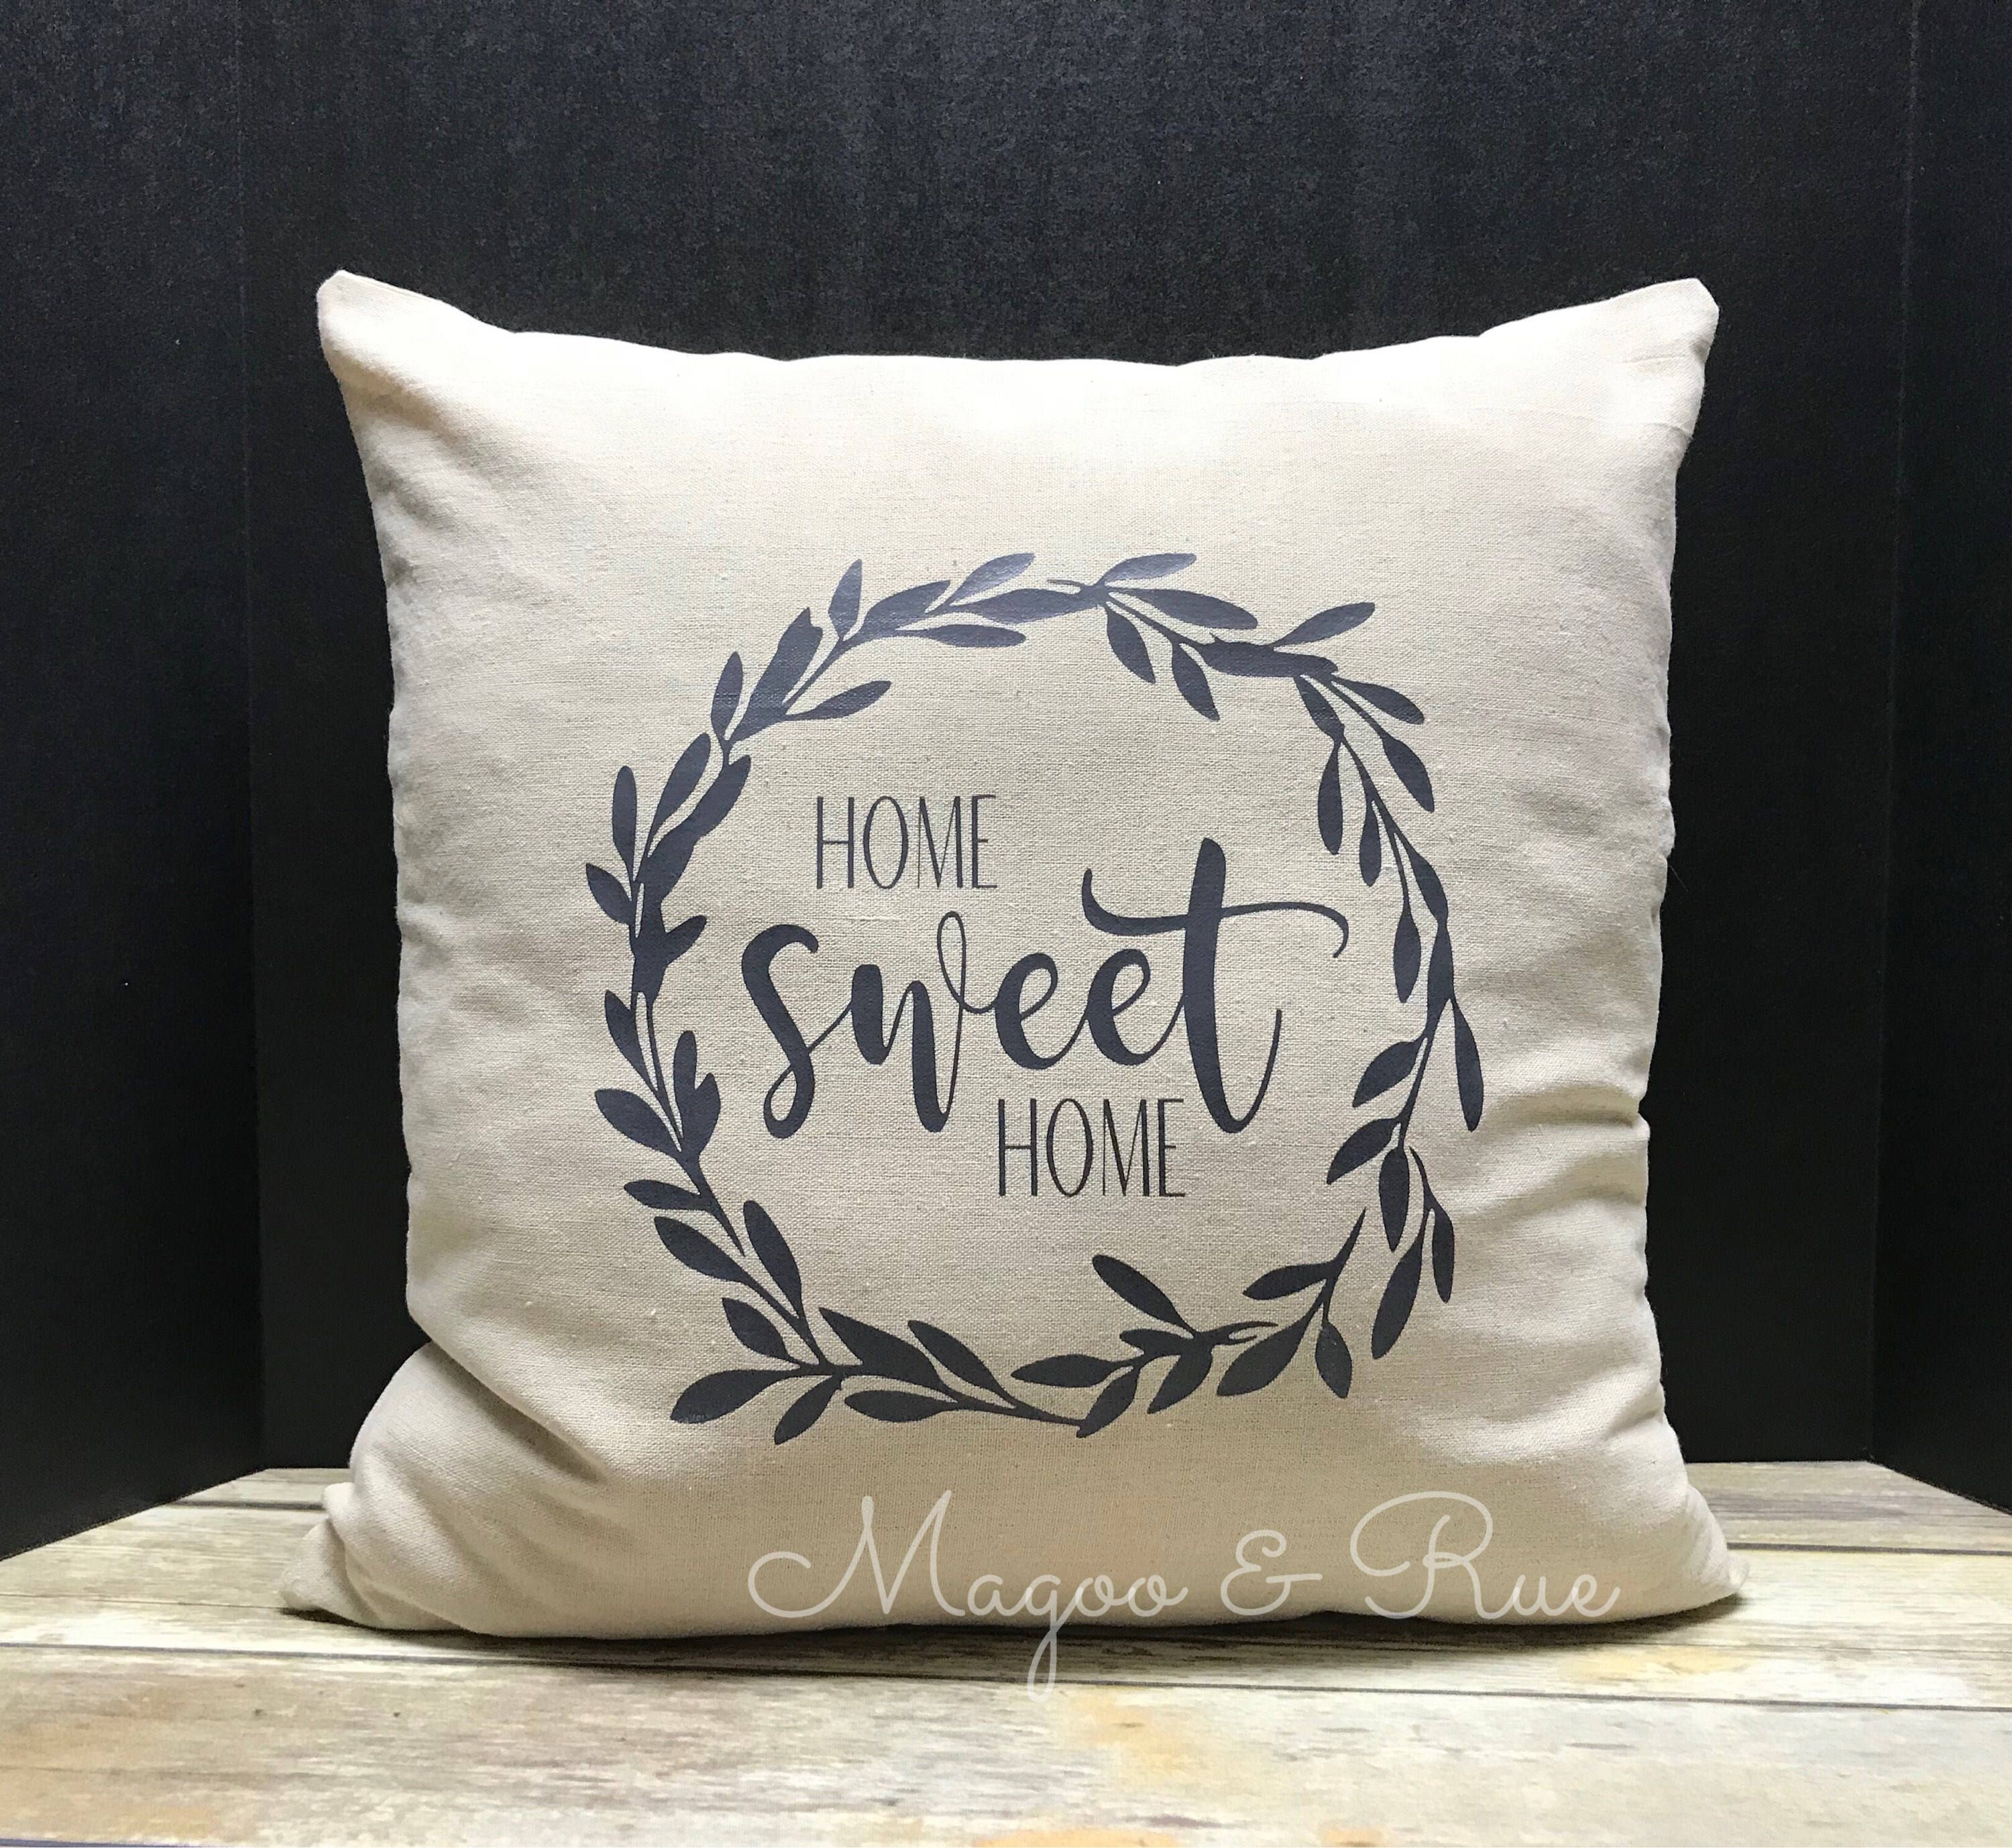 Home Sweet Home Farmhouse Decorative Pillow Cover Etsy